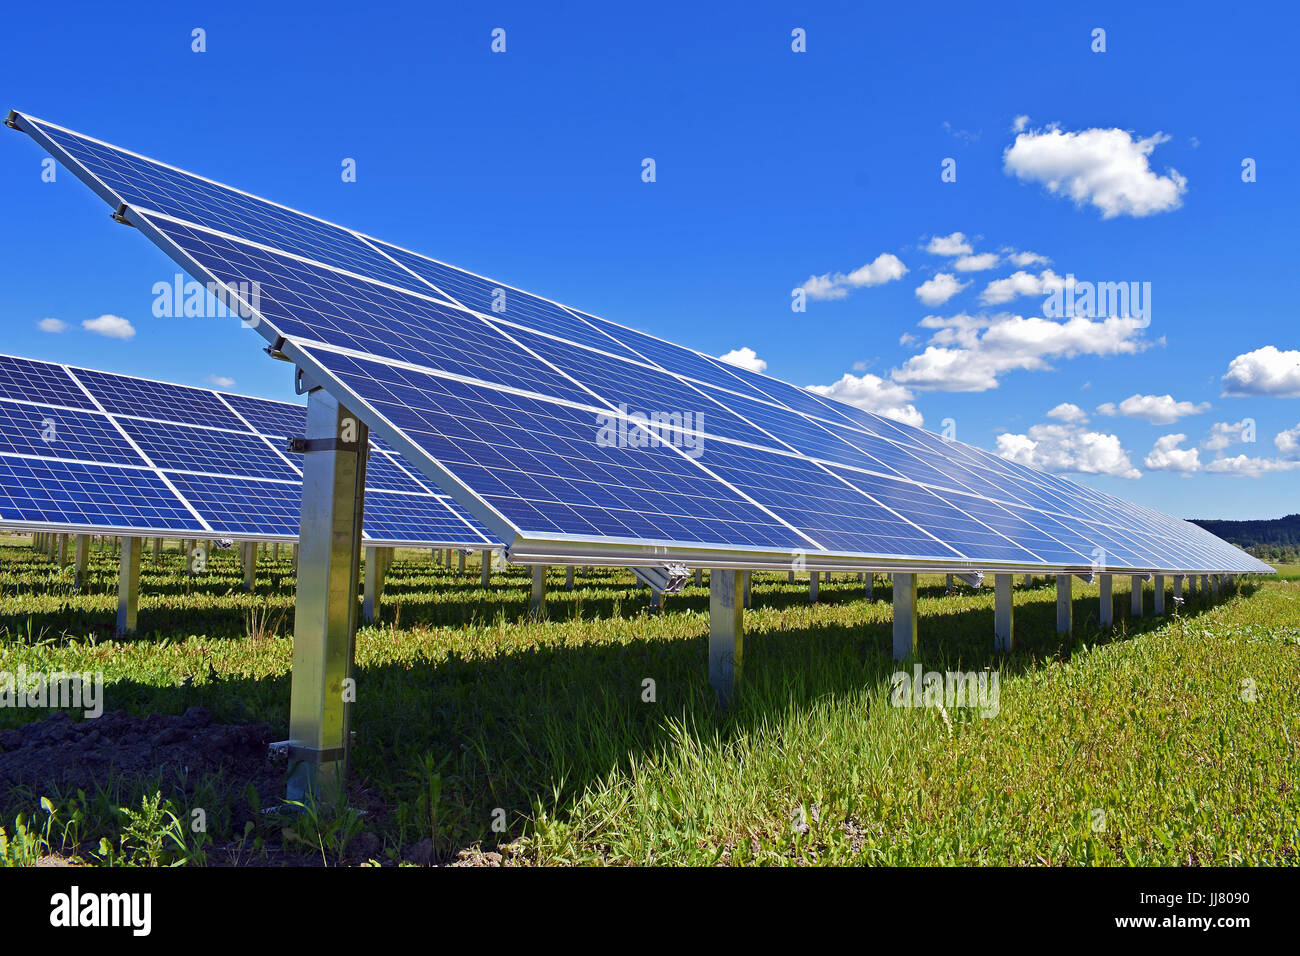 Solar panels on field. Clear sky with a few small clouds on background. - Stock Image